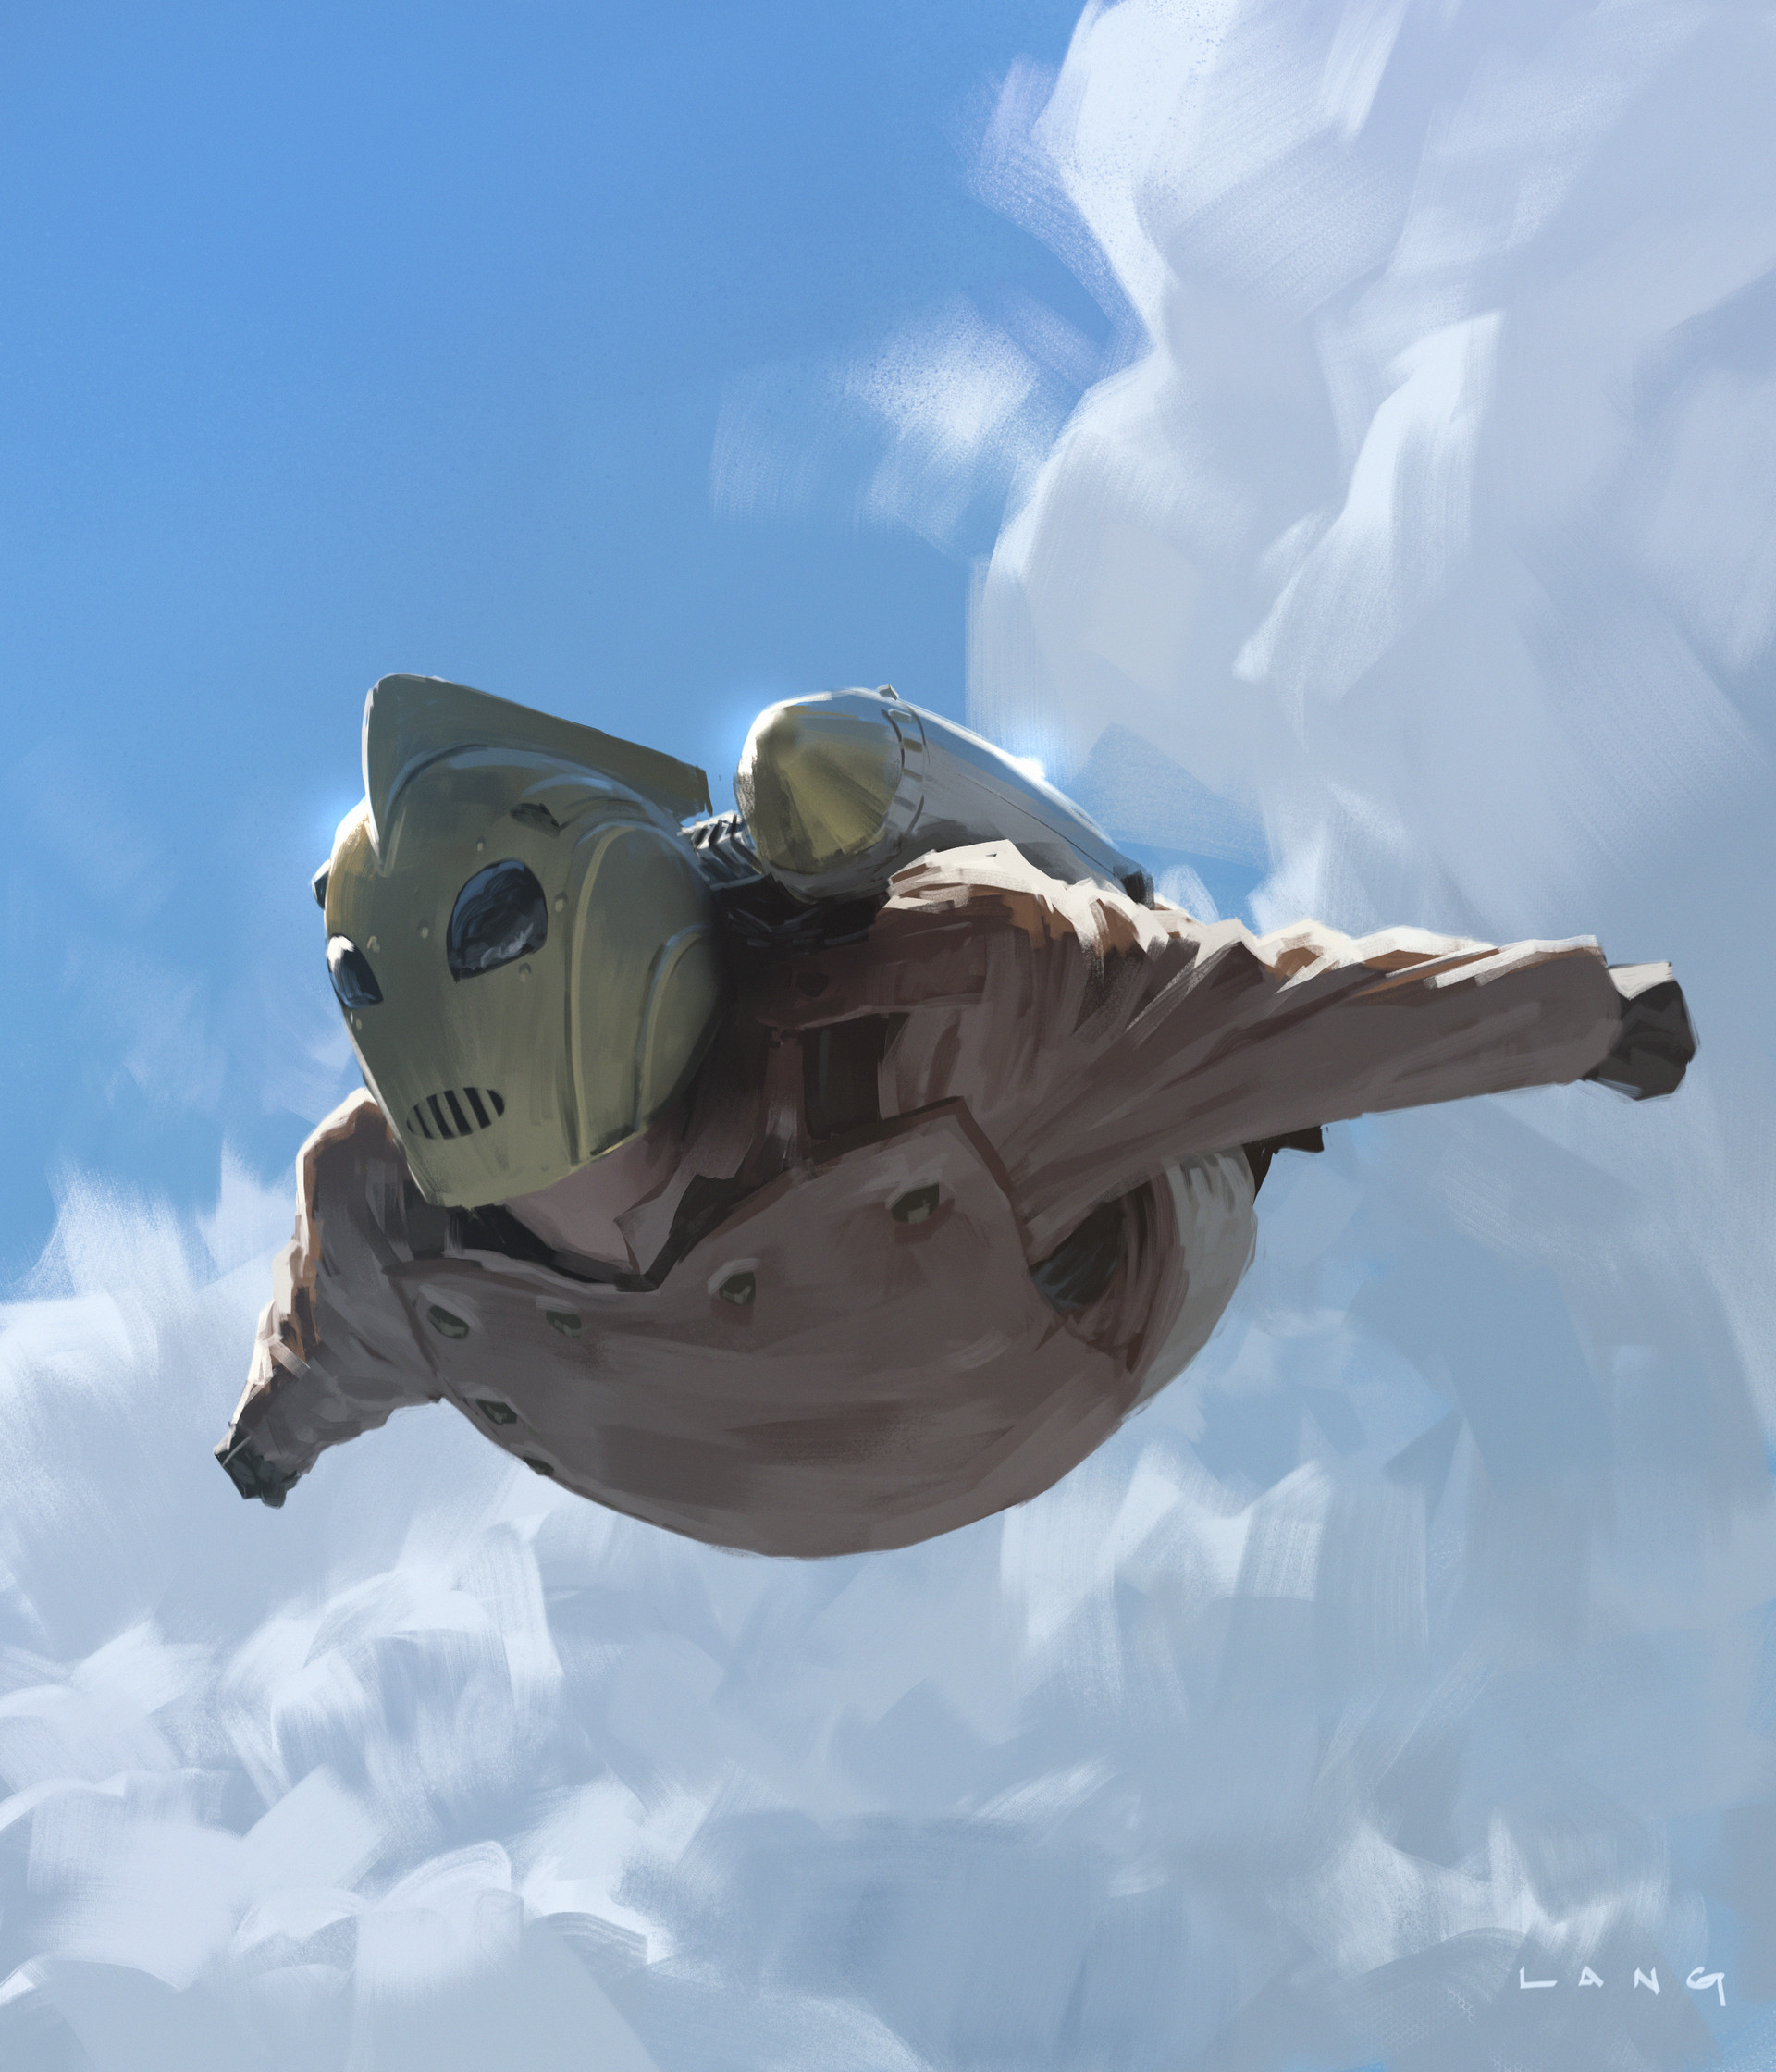 Ryan lang rocketeer